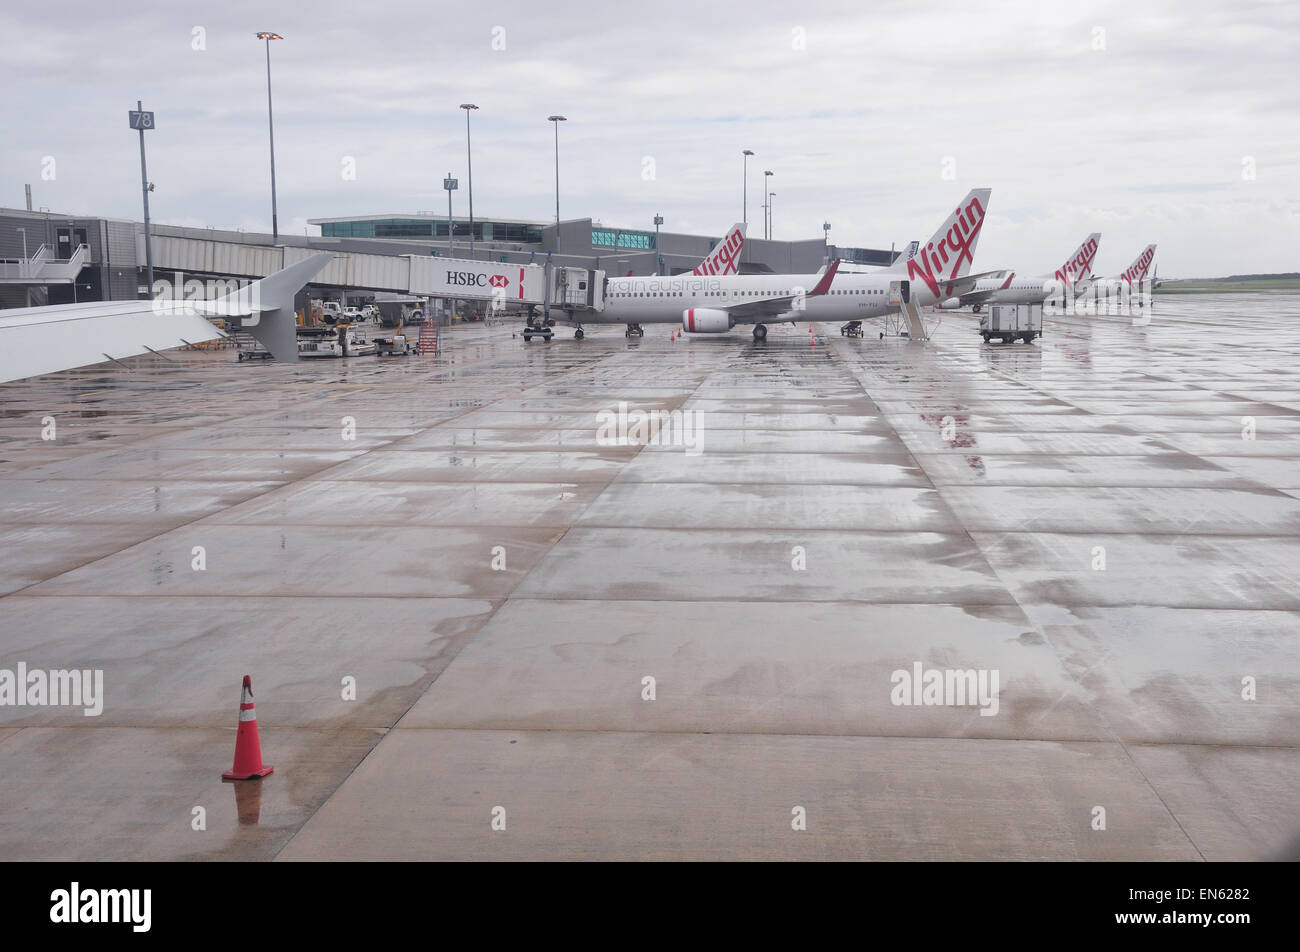 BRISBANE, AUSTRALIA: MARCH 8: commercial airliners from Virgin Airlines lined up on the tarmac on 8-3-2013 at Brisbane - Stock Image